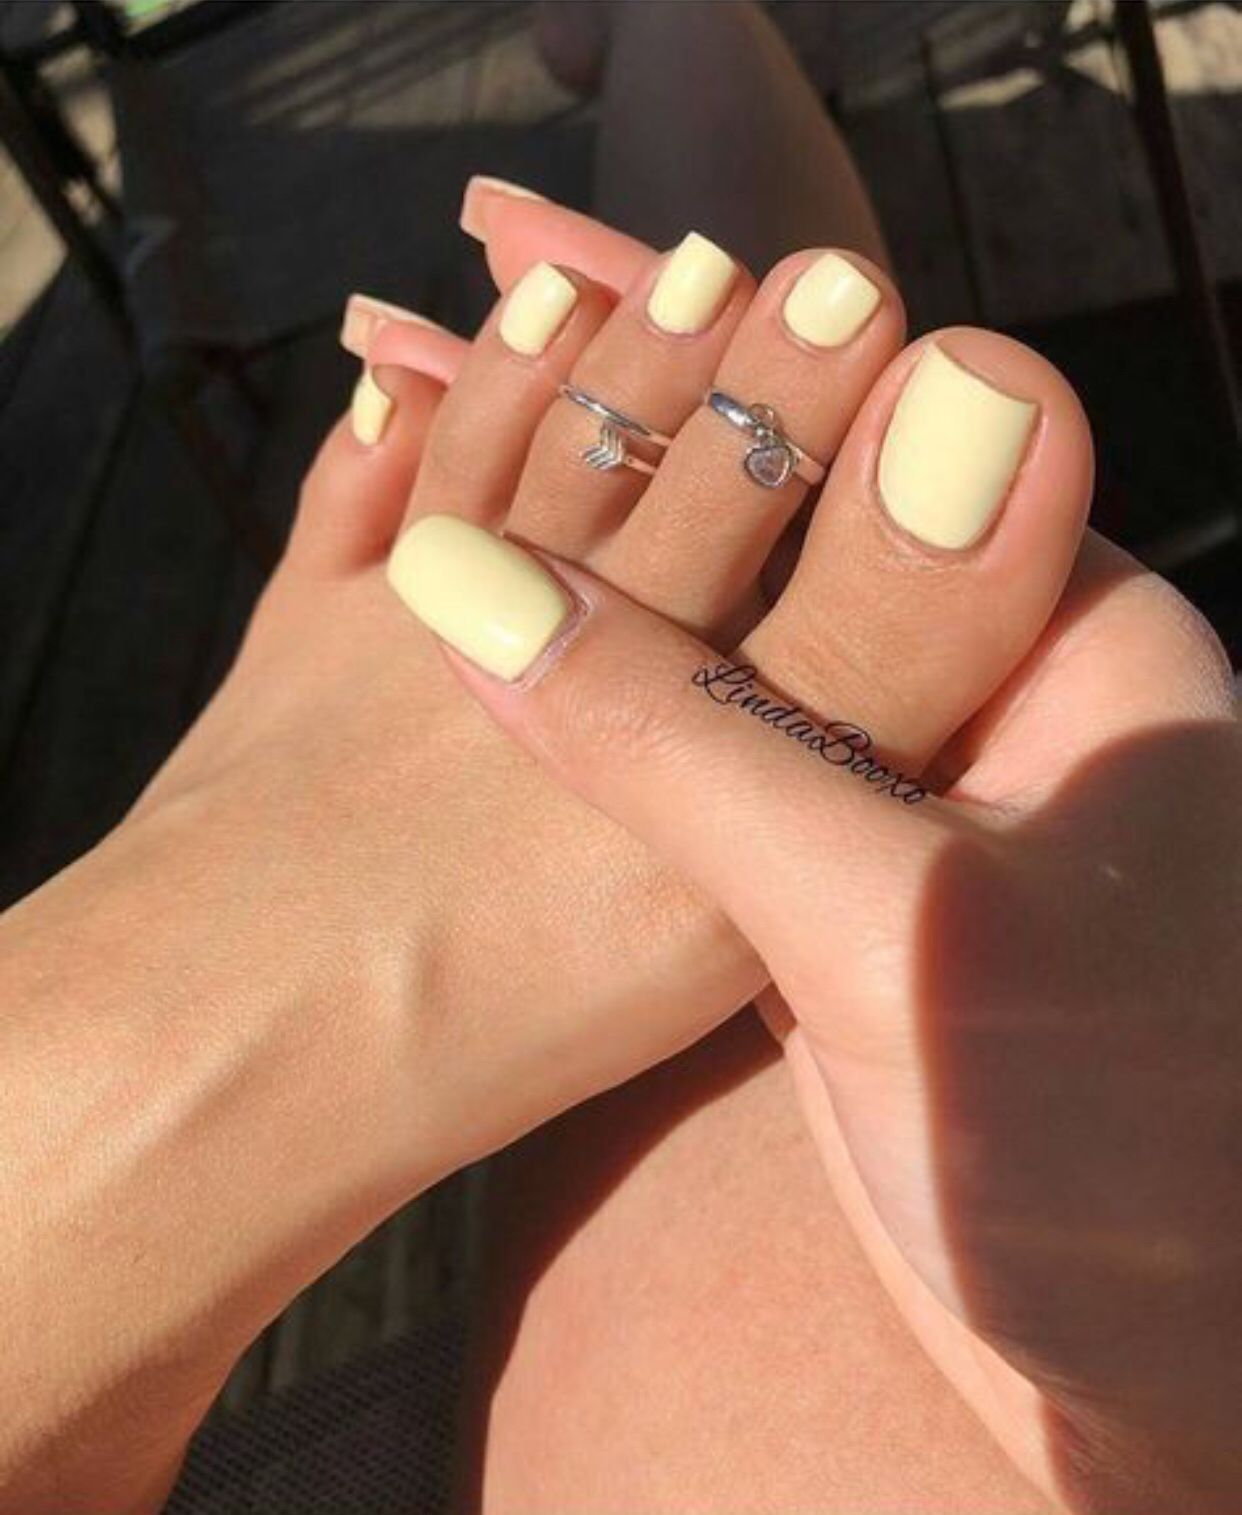 Pin By Trinity Ledbetter On She Nailed It In 2019 Yellow Nail